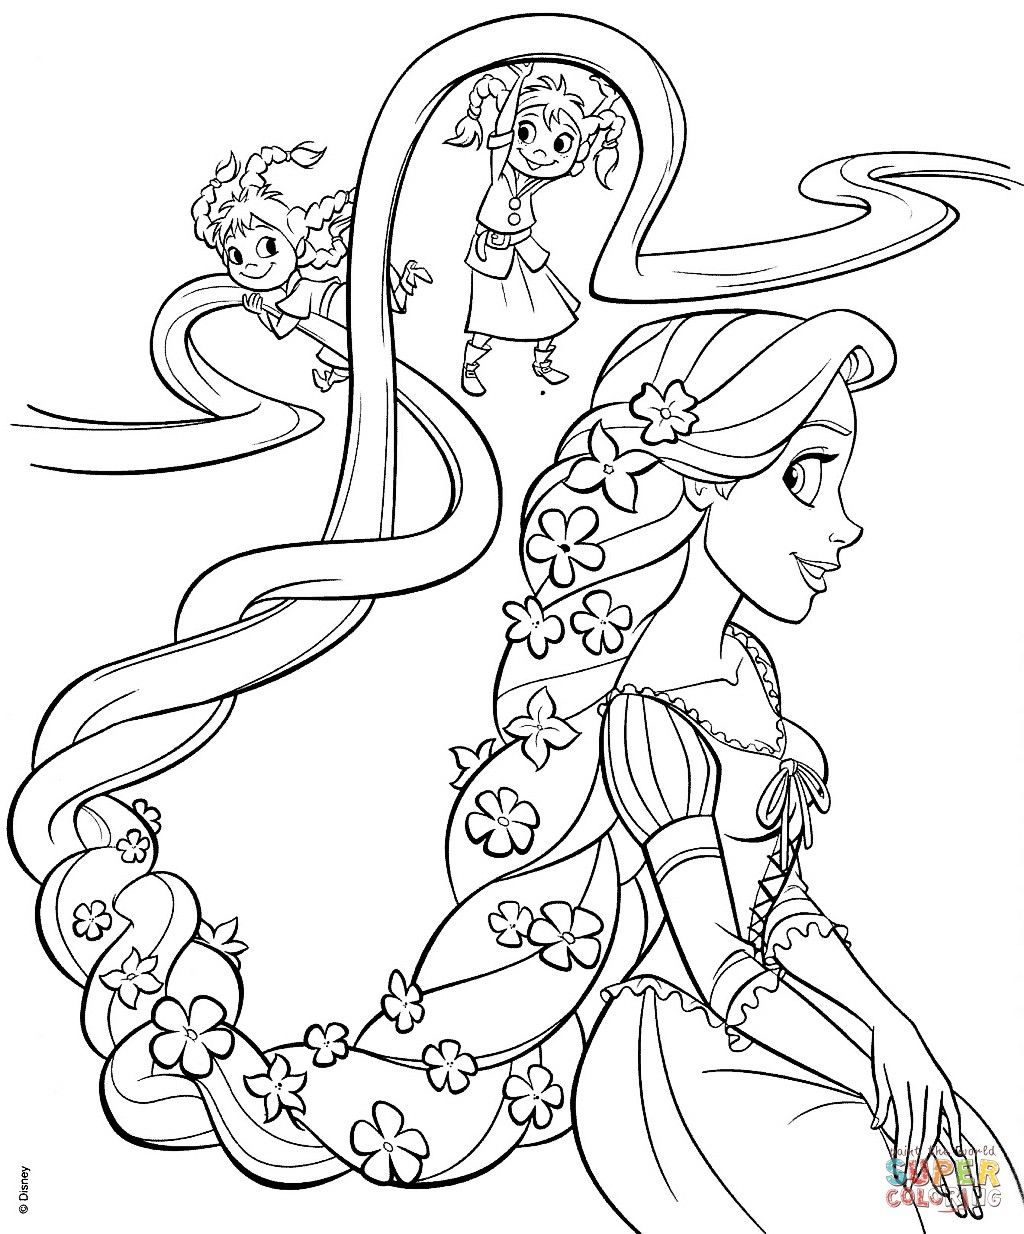 Disney Princess Coloring Pages To Print Rapunzel From The Thousands Of Photograp Tangled Coloring Pages Disney Princess Coloring Pages Disney Coloring Sheets